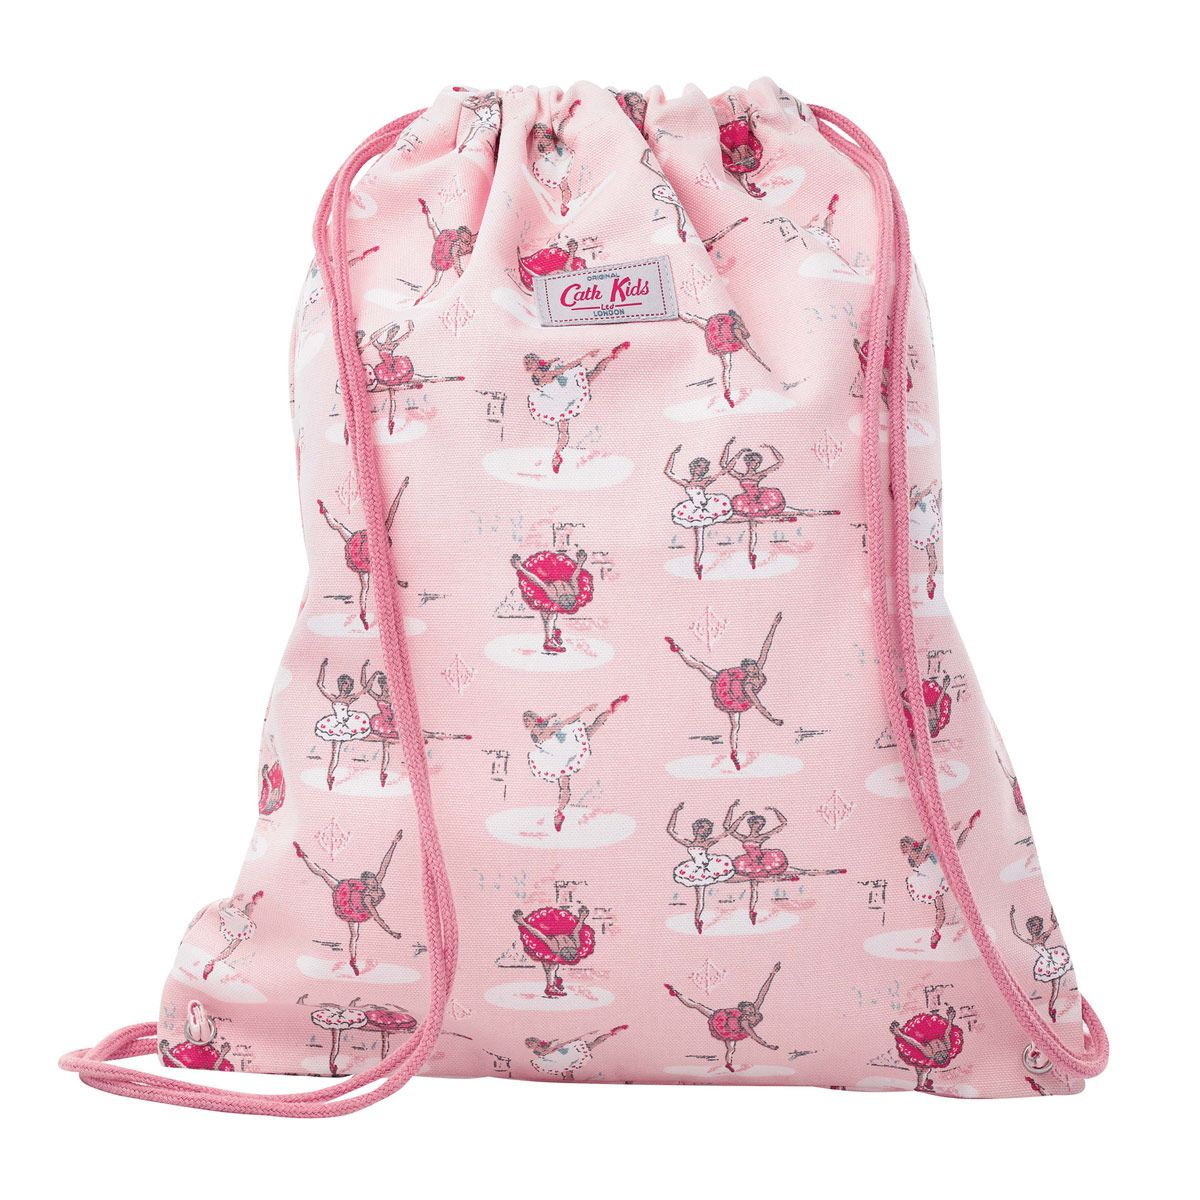 Cath Kidston Ballerina Kids Drawstring Bag | All Things Shabby ...